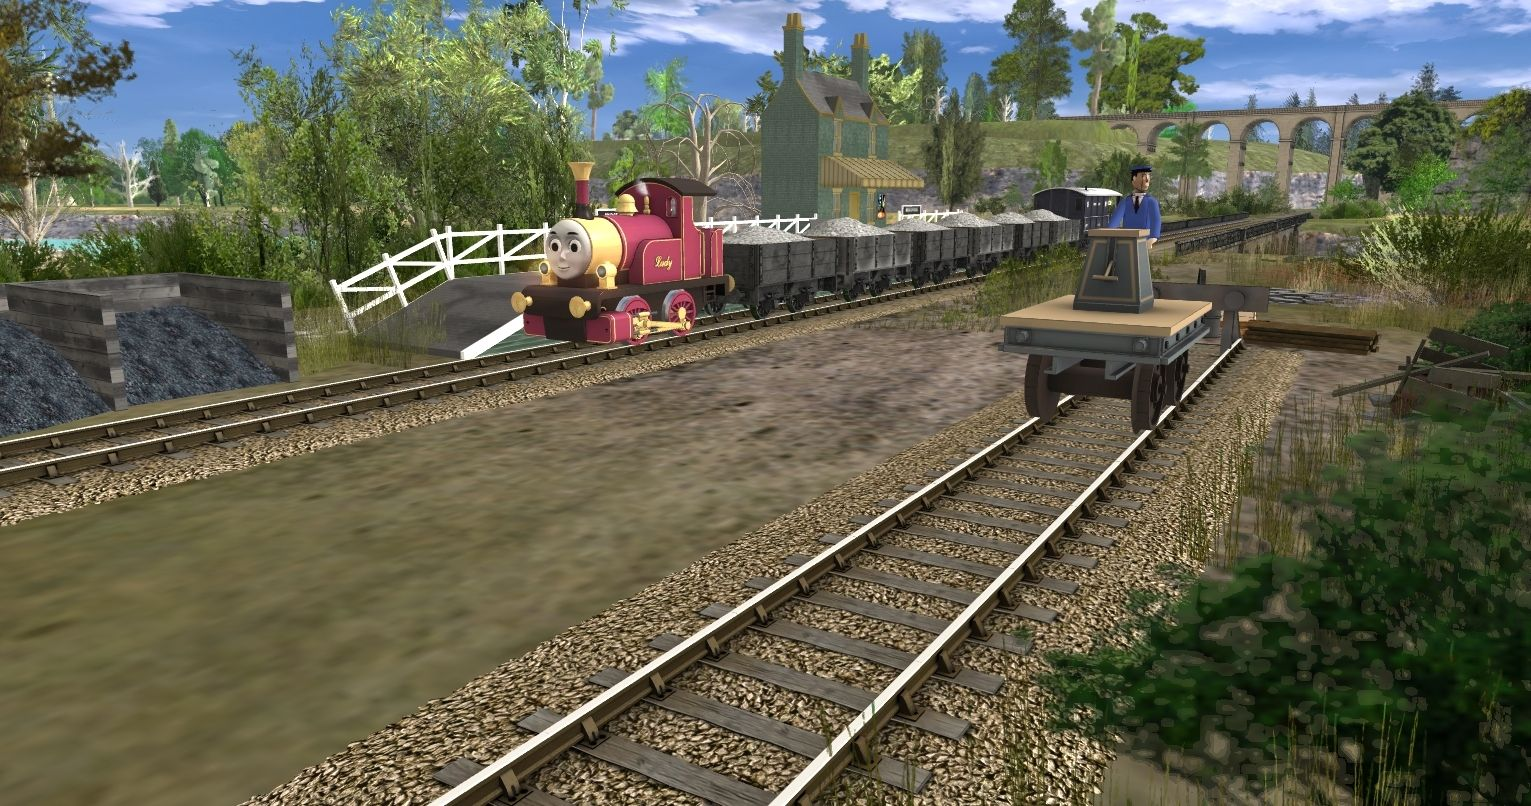 Trainz Lady Images - Reverse Search